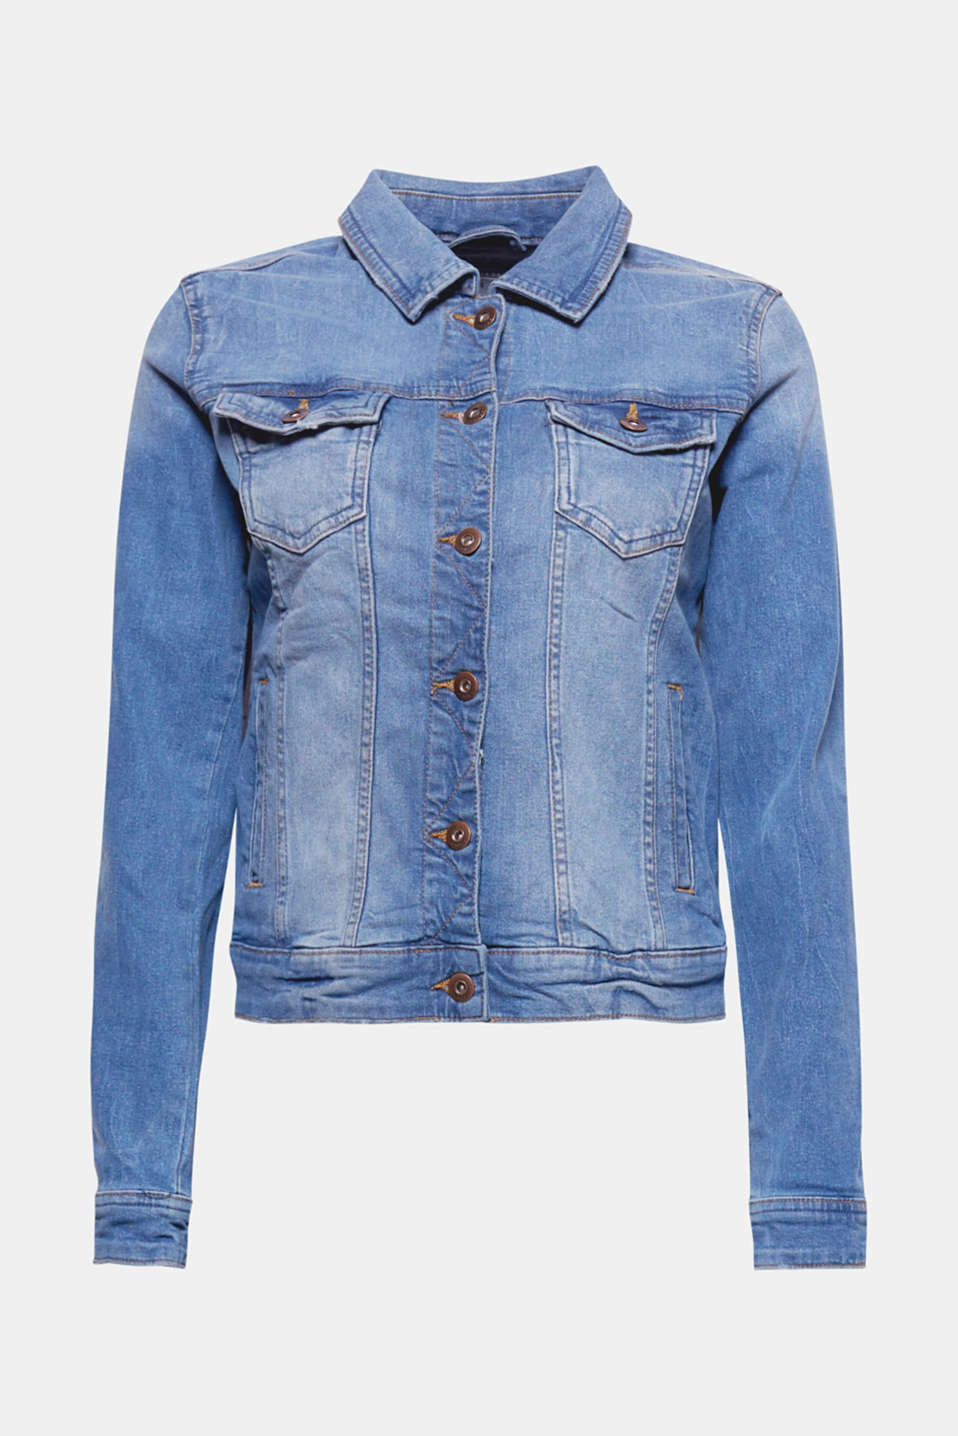 This denim jacket with added stretch for comfort in a casual finish is a versatile must-have basic.